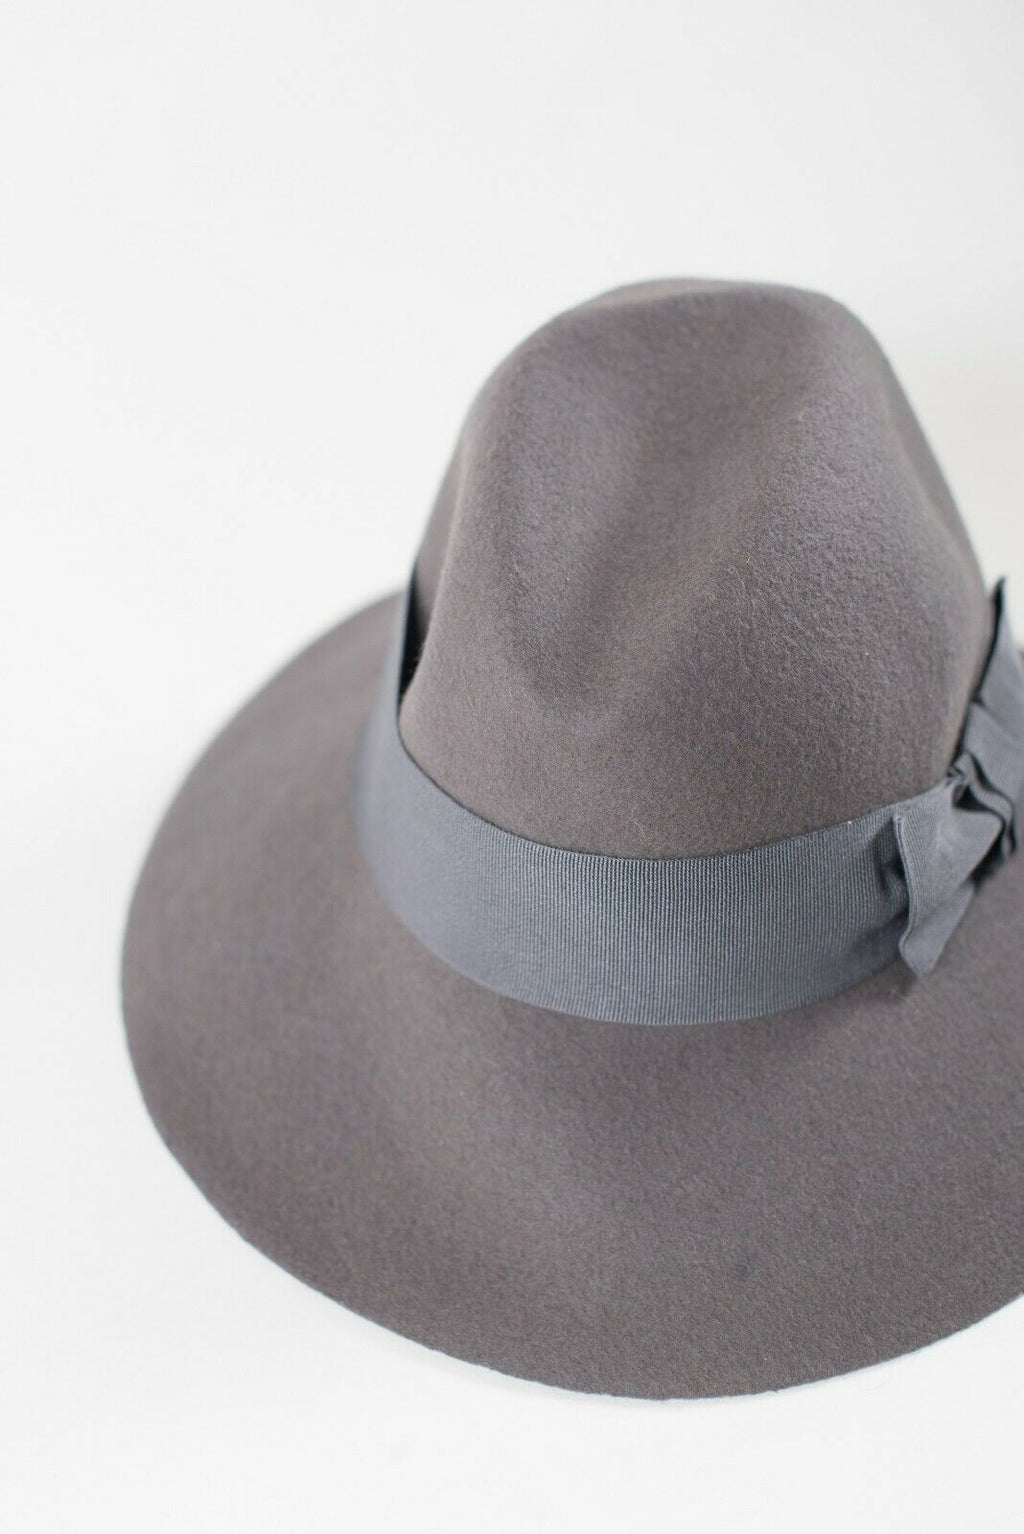 Holt Renfrew Unisex O/S Gray Hat Wide Brim Bow Made in Italy Wool Fedora Cloche